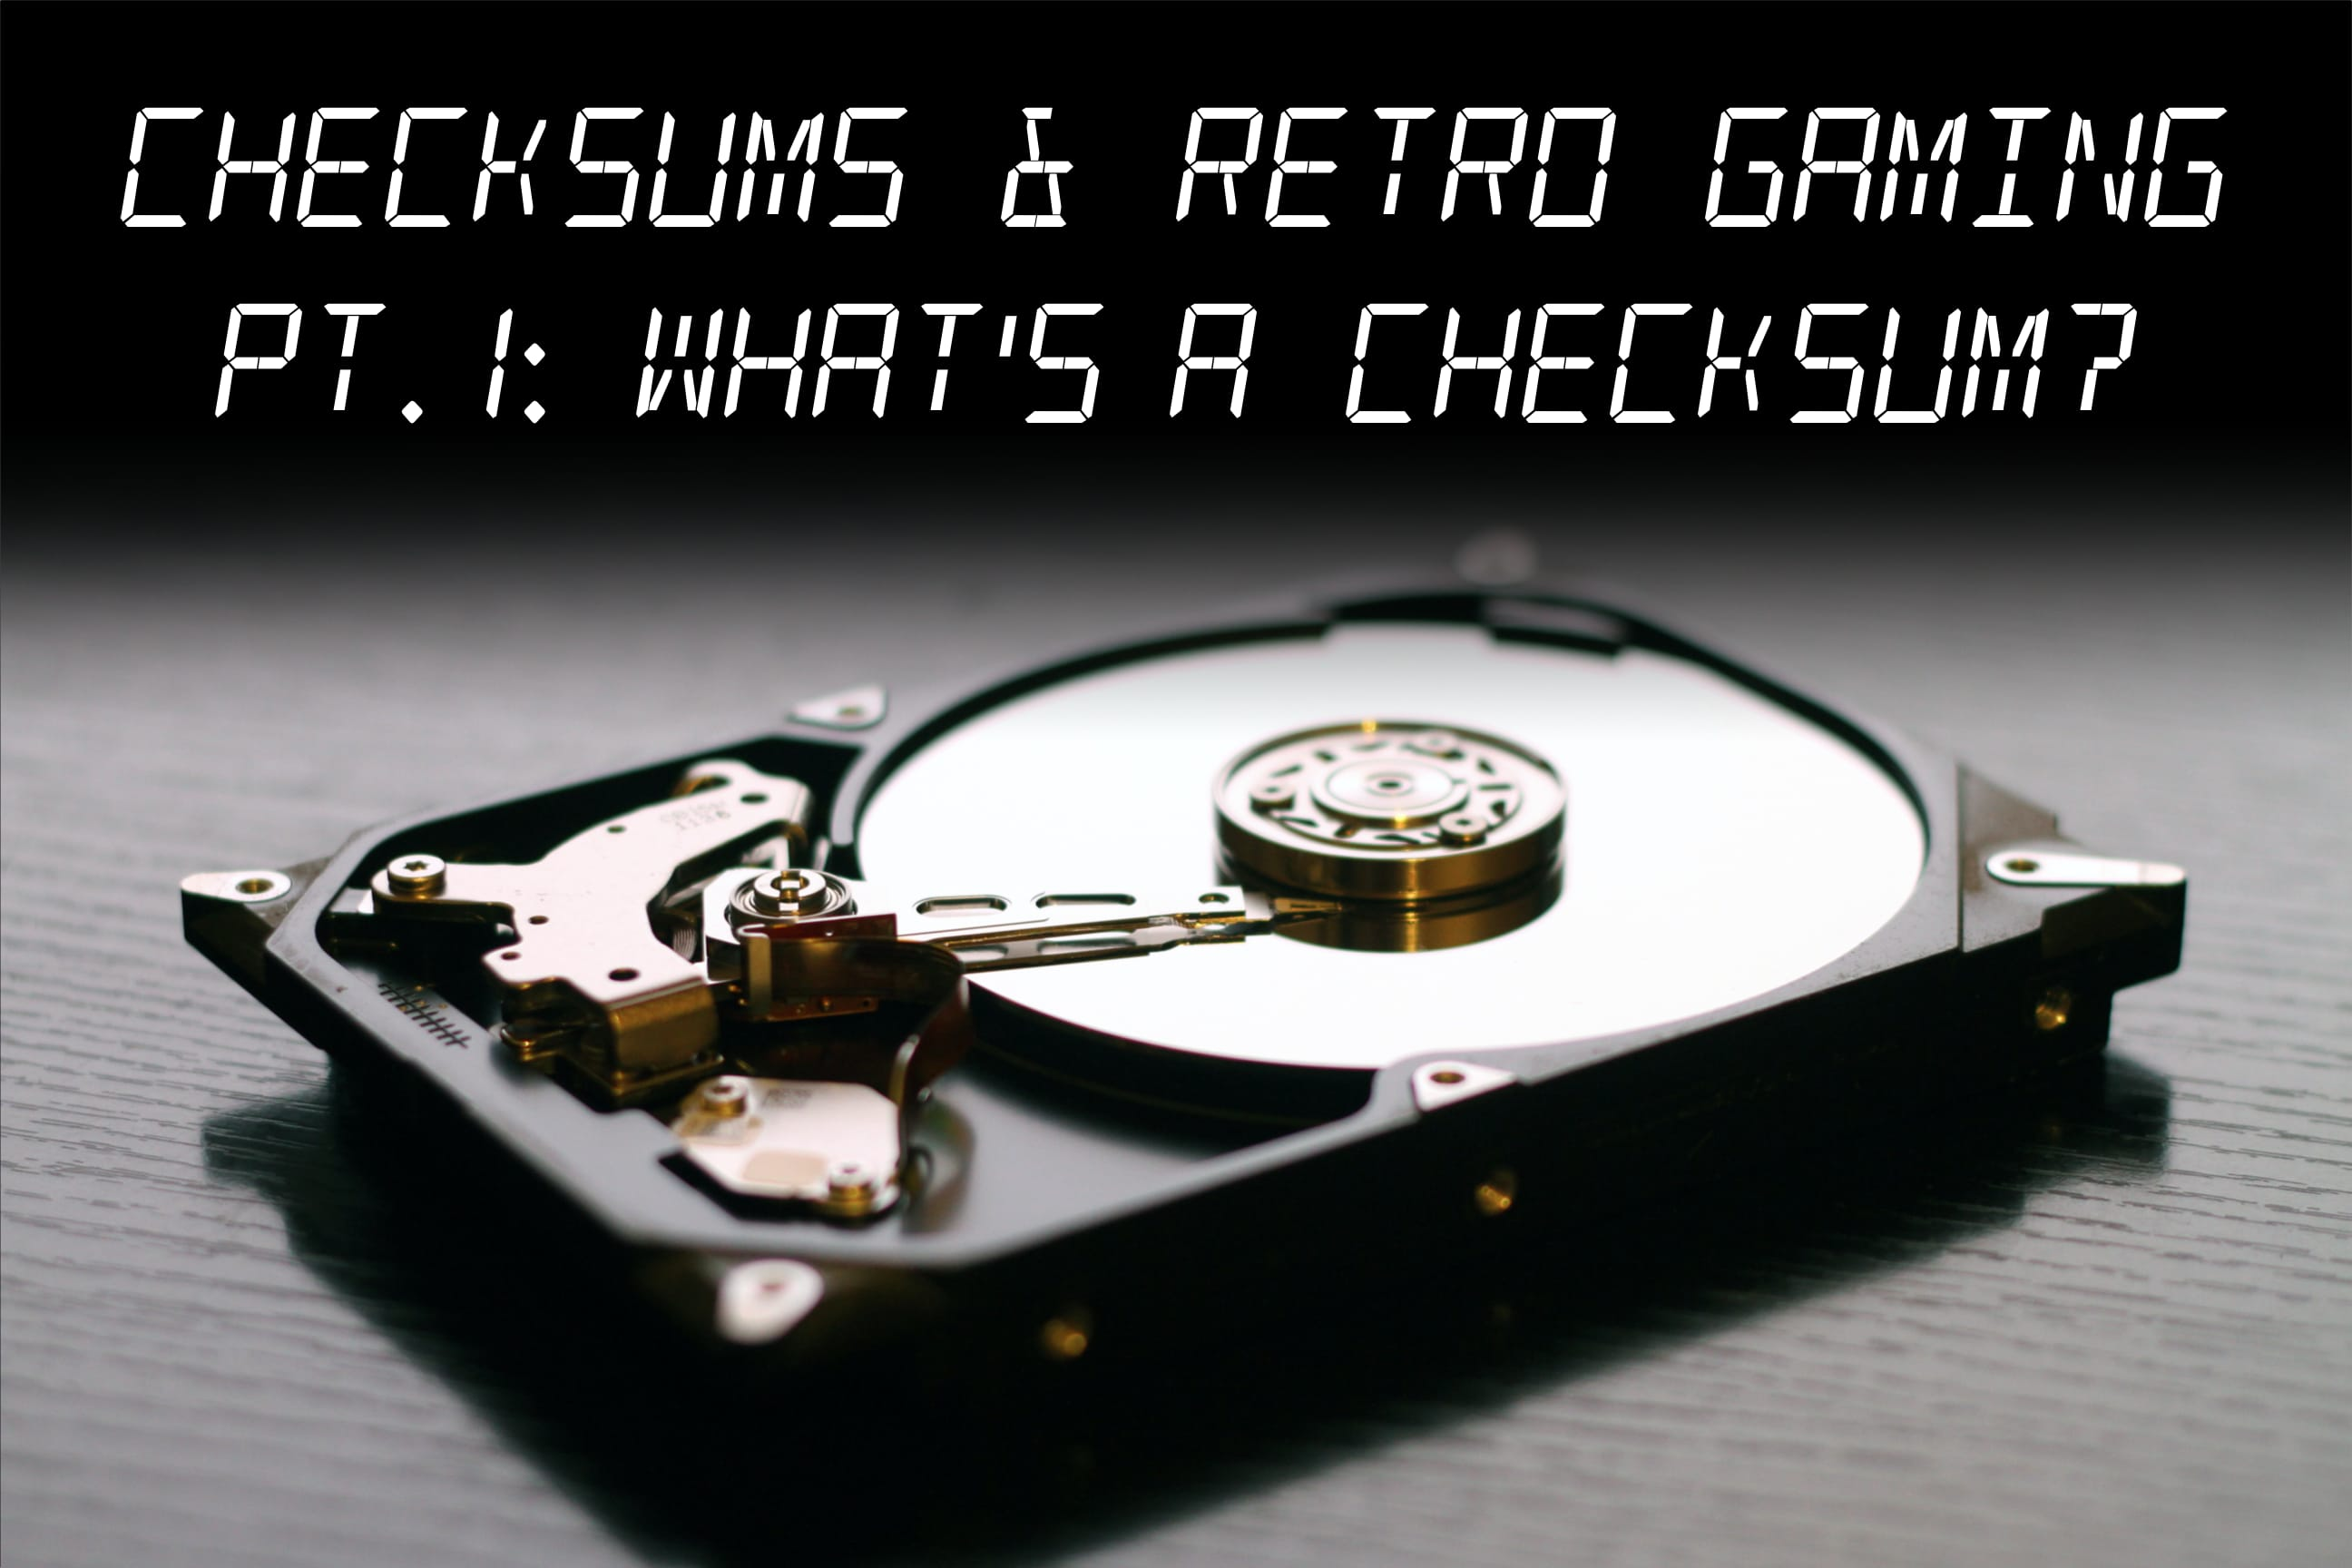 Checksums and Gaming – Pt. 1: What's a Checksum?